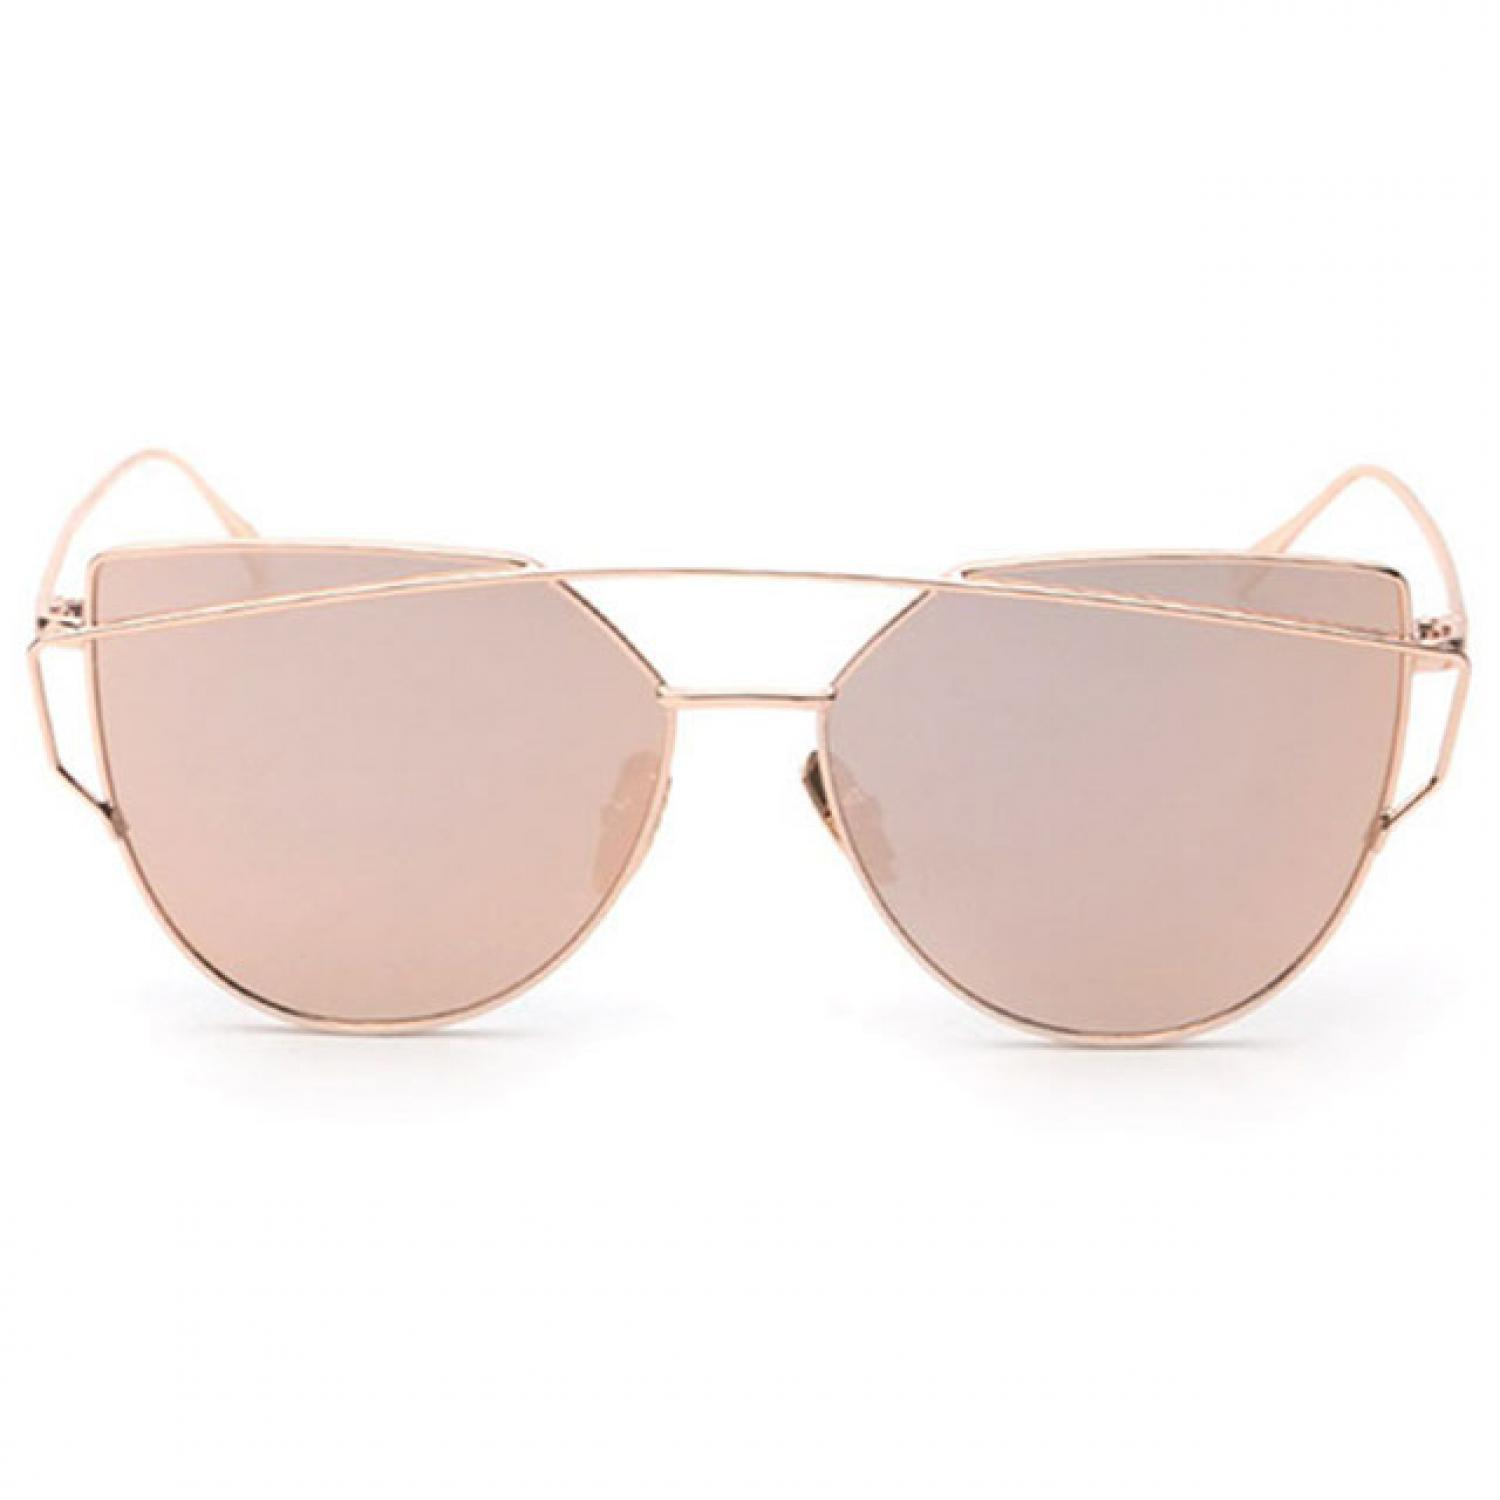 RunBird Kacamata Wanita Cat Eye Sunglasses Classic ...